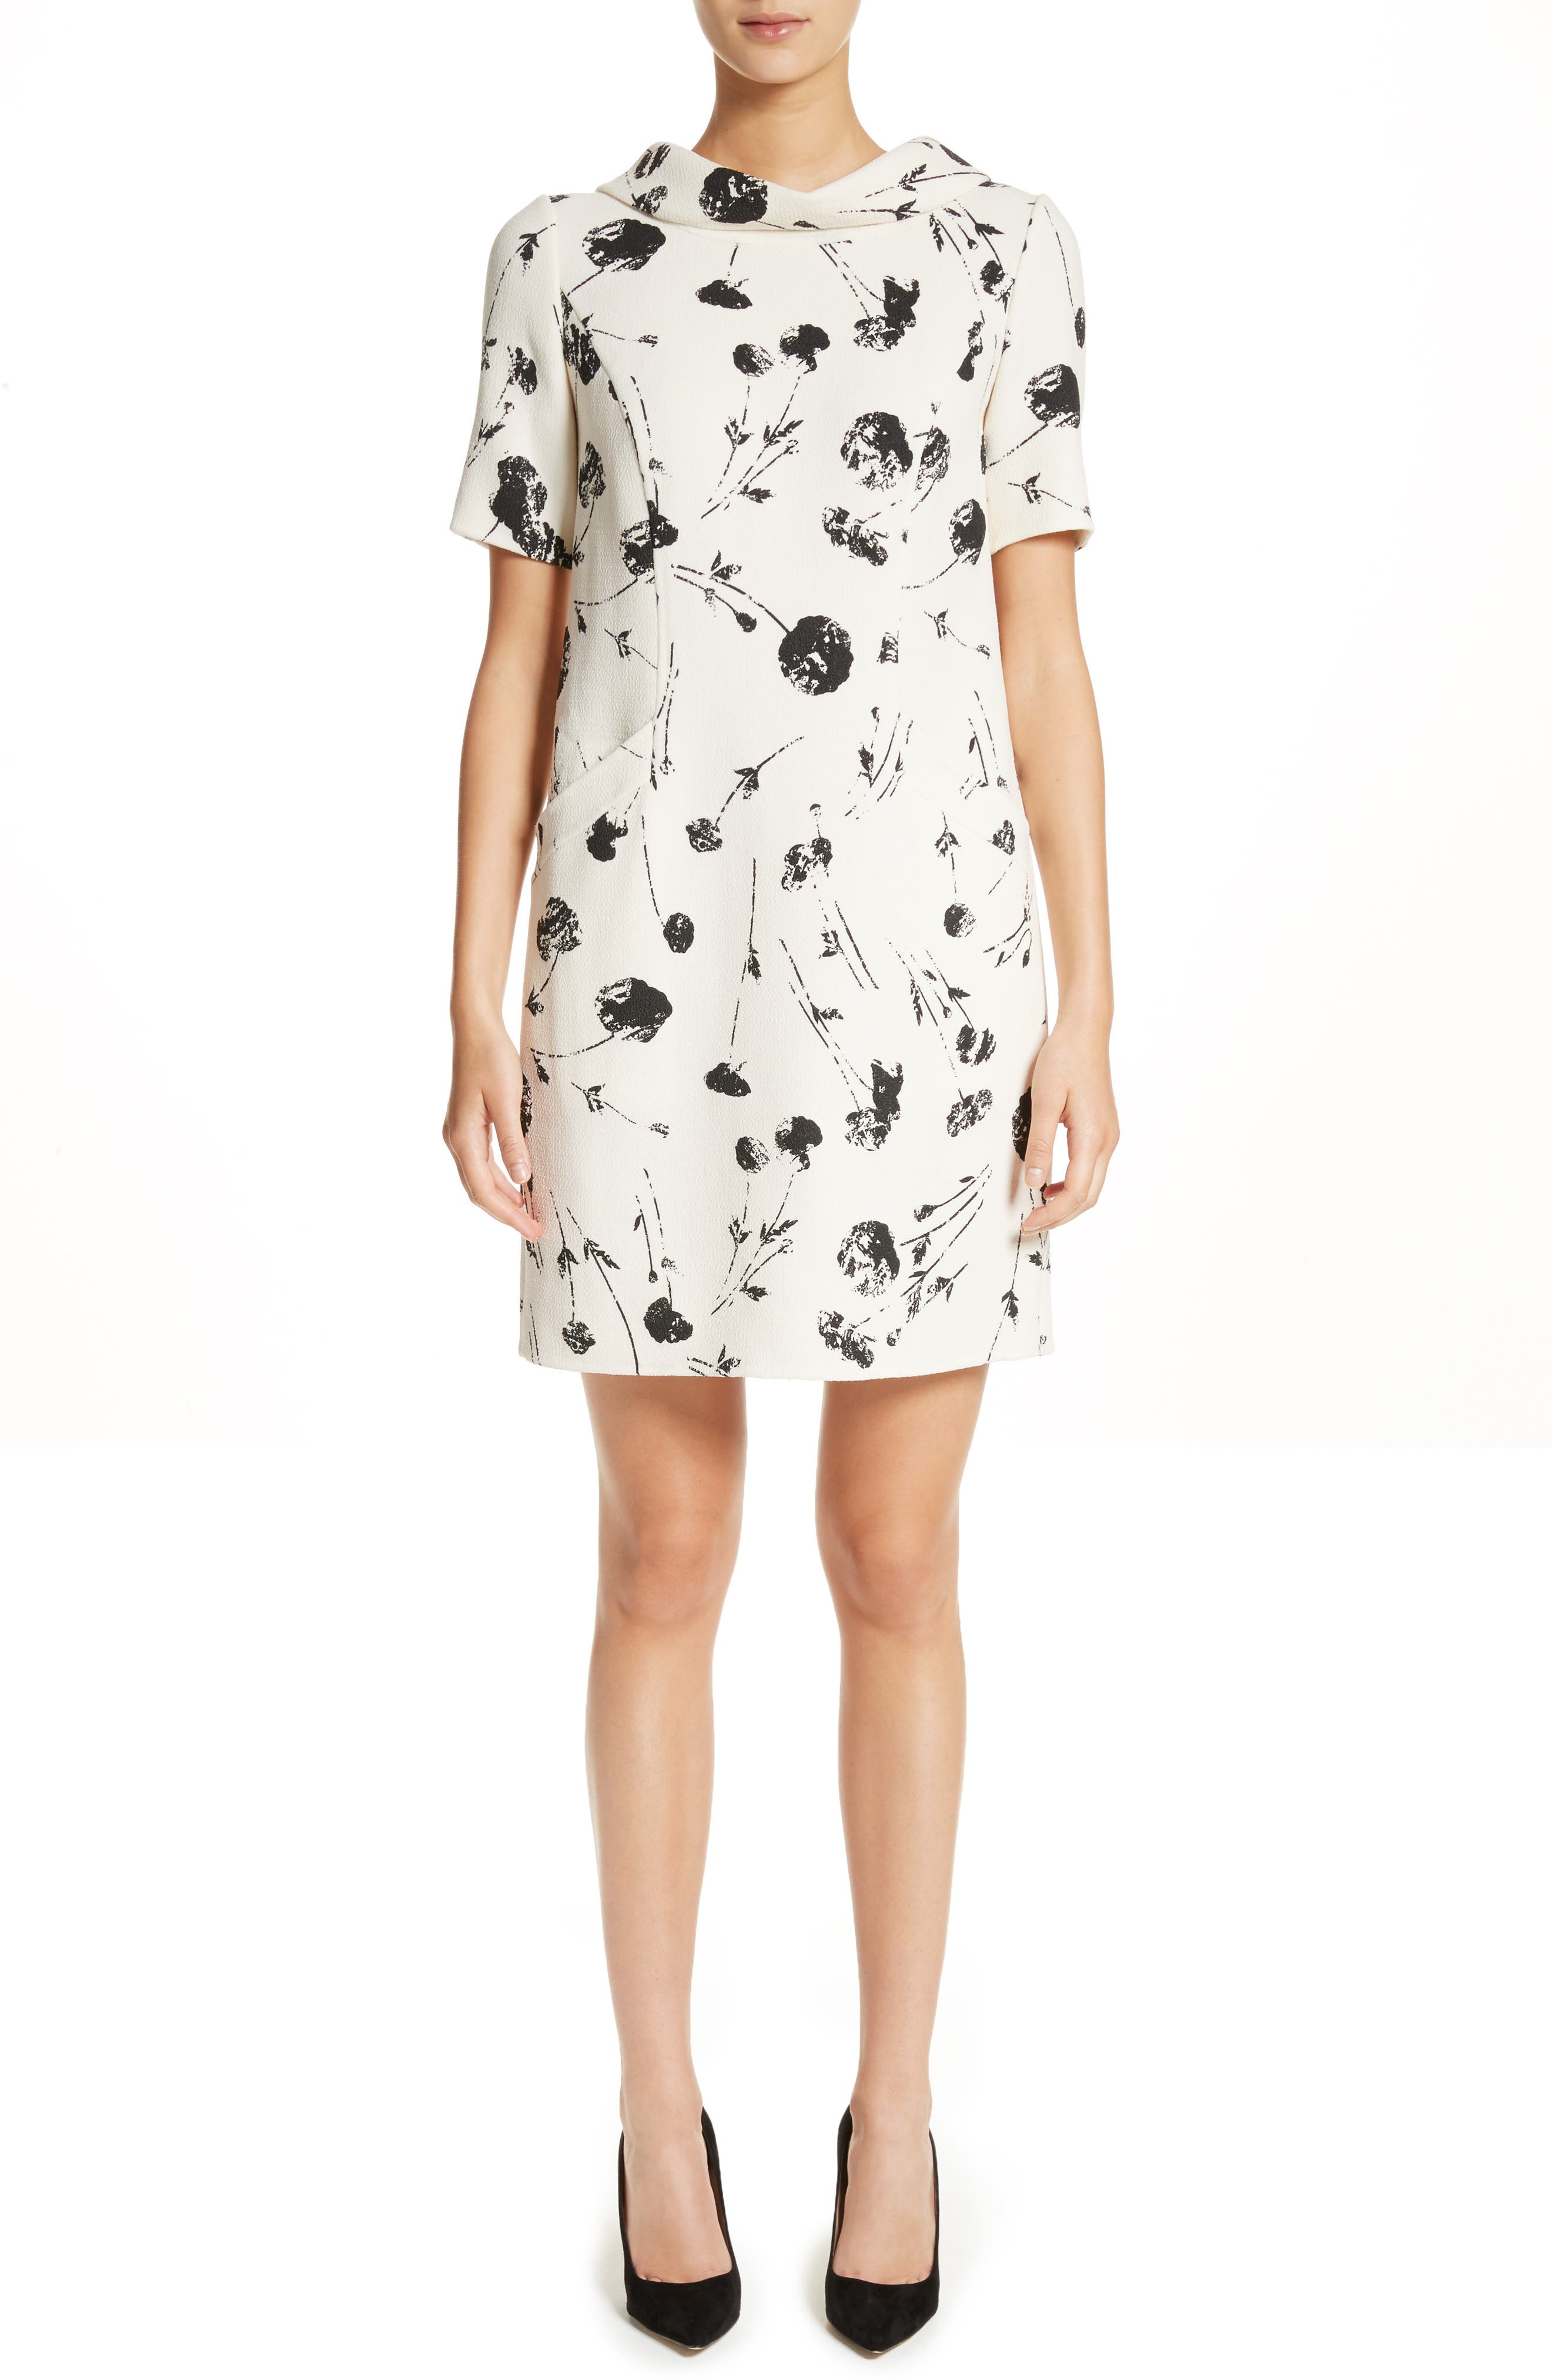 Tossed Poppies Print Crepe Shift Dress,                         Main,                         color, Ivory/ Black